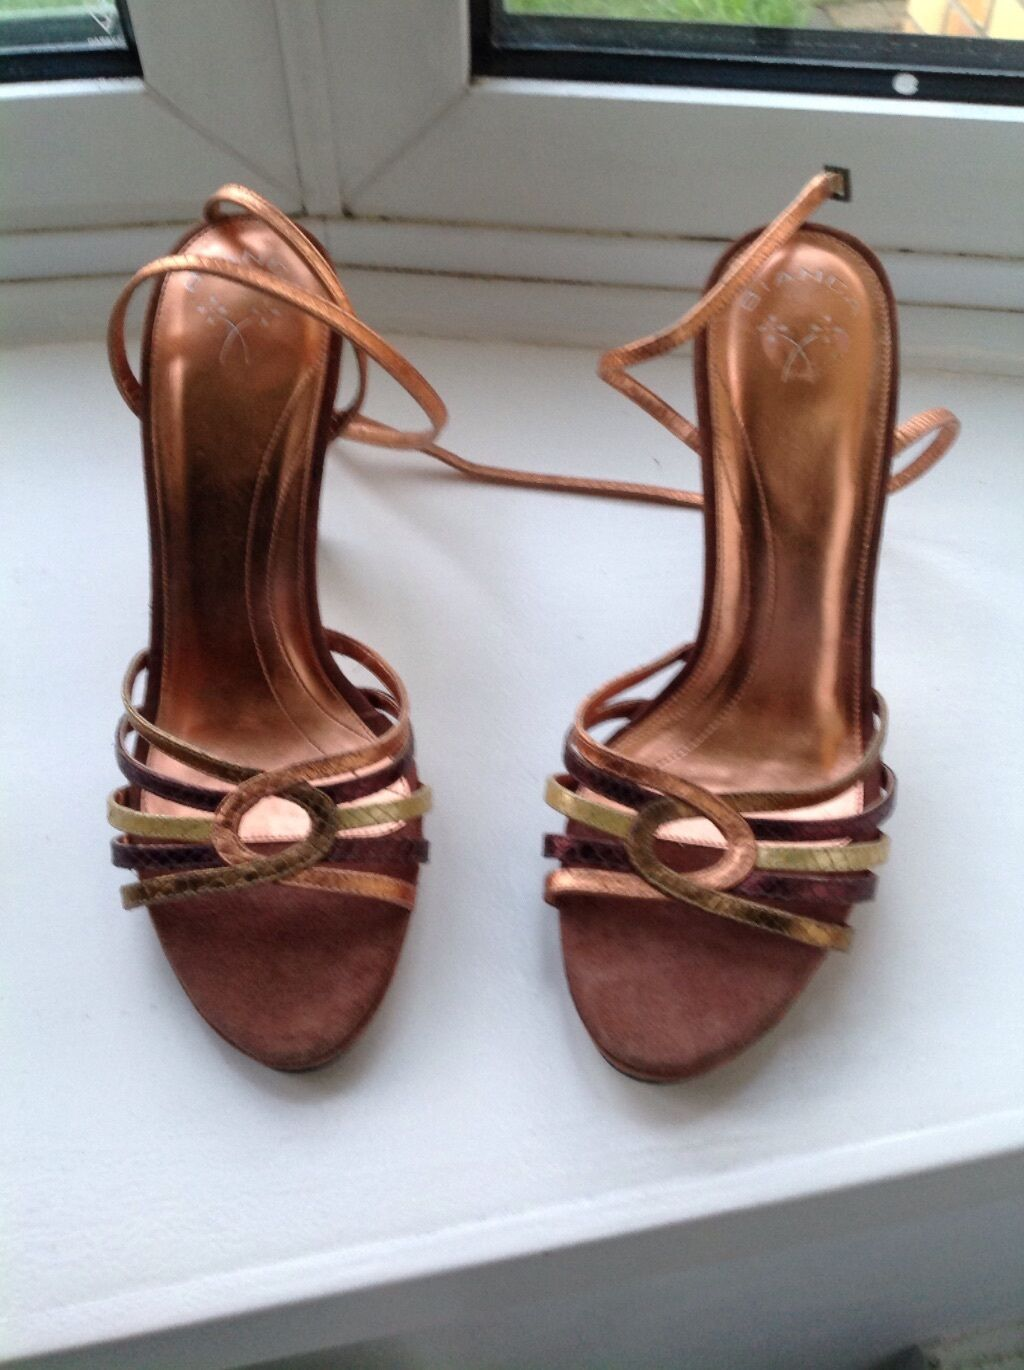 Women Strappy Leather Heeled Sandals in multi colours.New, 6UK/39EU